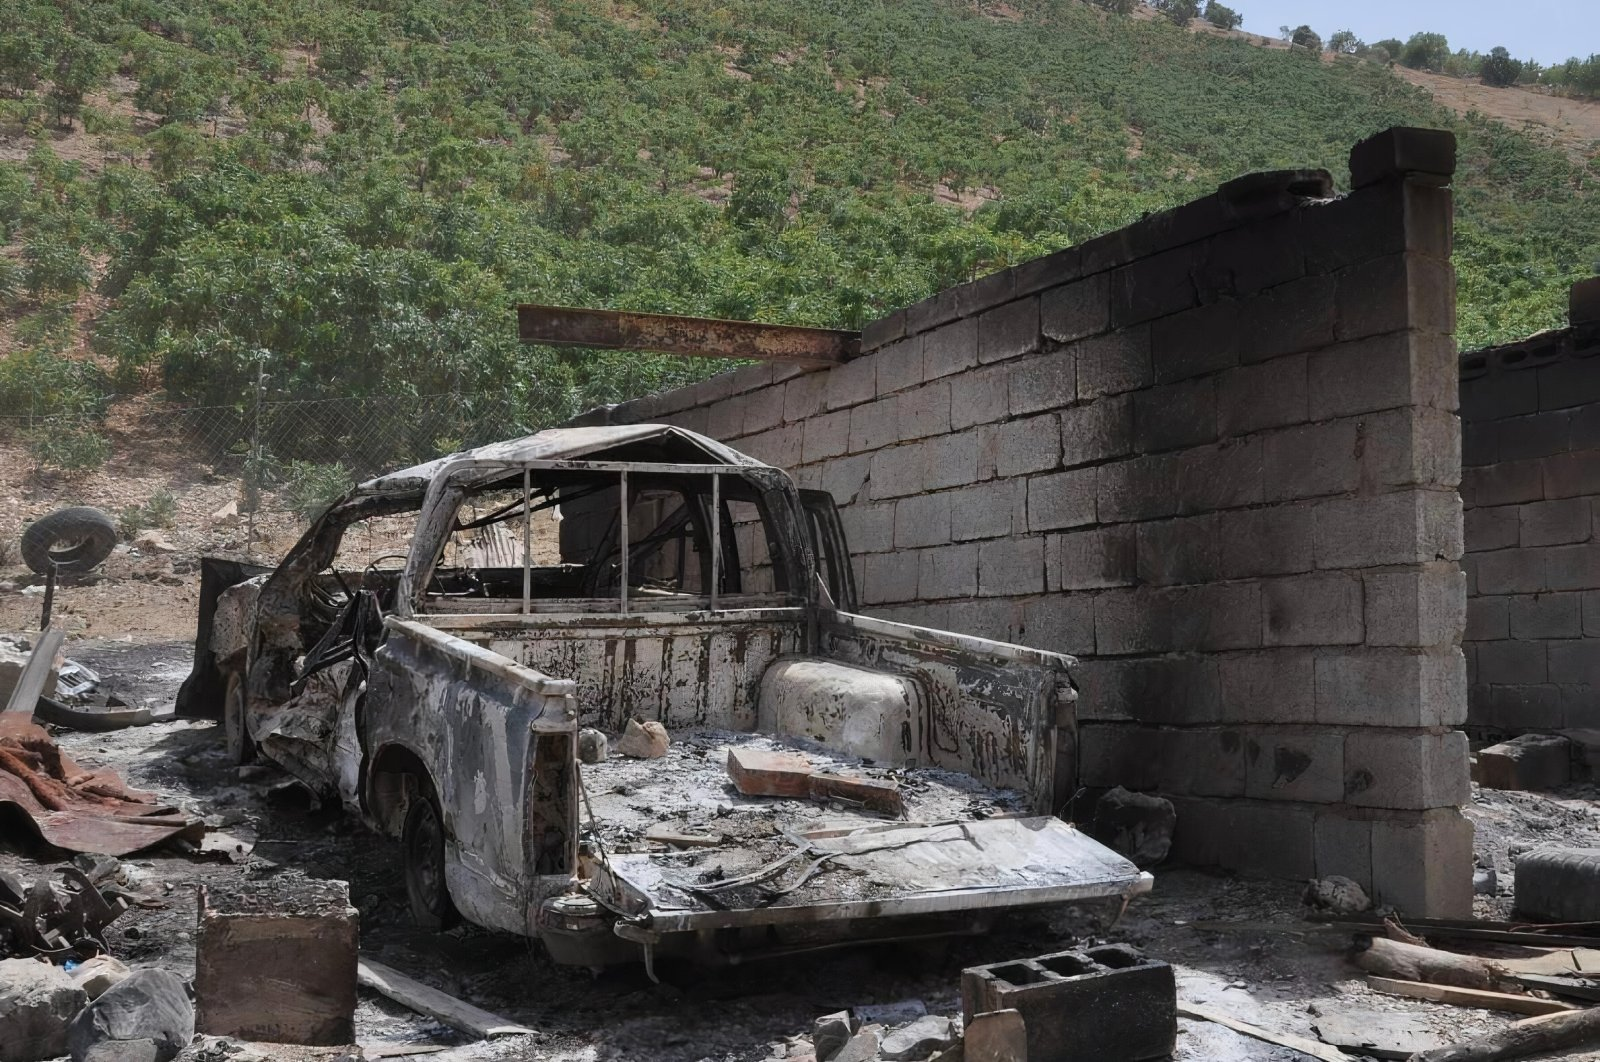 Remains of a vehicle are seen in Sulaymaniyah, northern Iraq, after PKK terrorists Mahiye Açık and Roha Racı were killed in a Turkish intelligence operation in this undated photo released on June 30, 2021. (AA Photo)